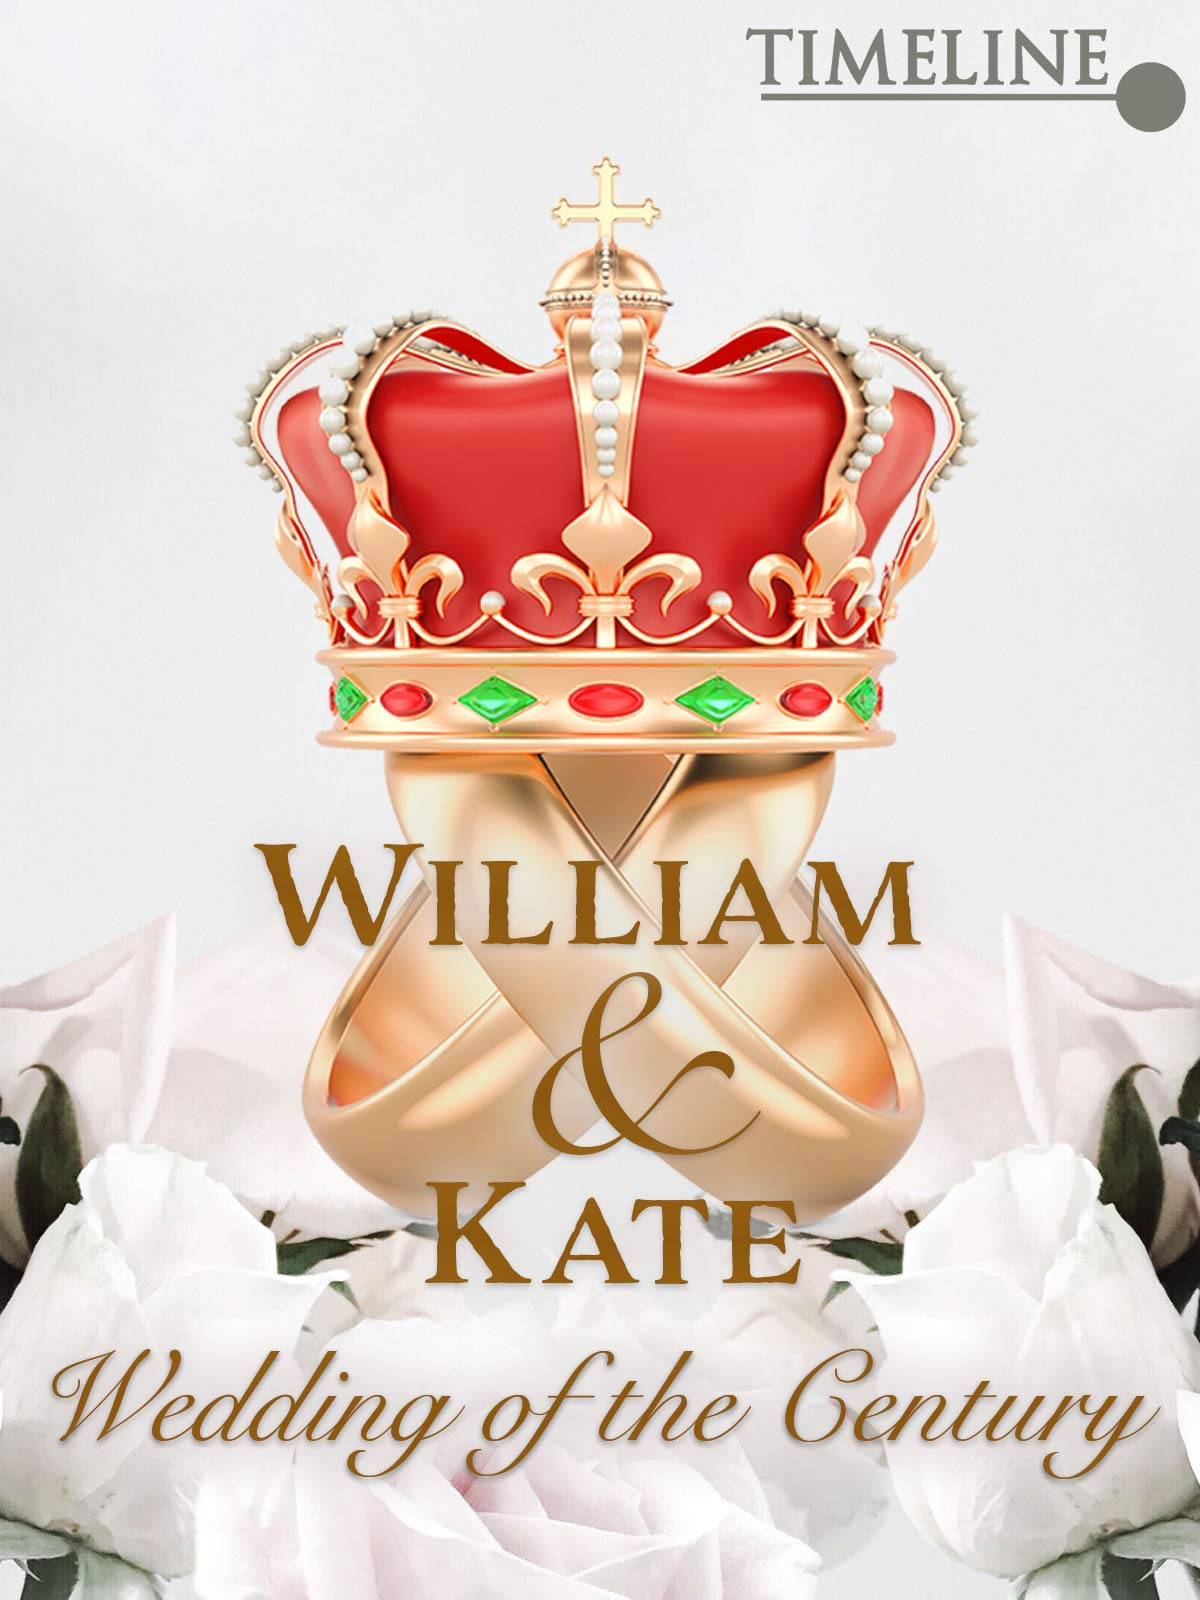 William and Kate: Wedding Of The Century